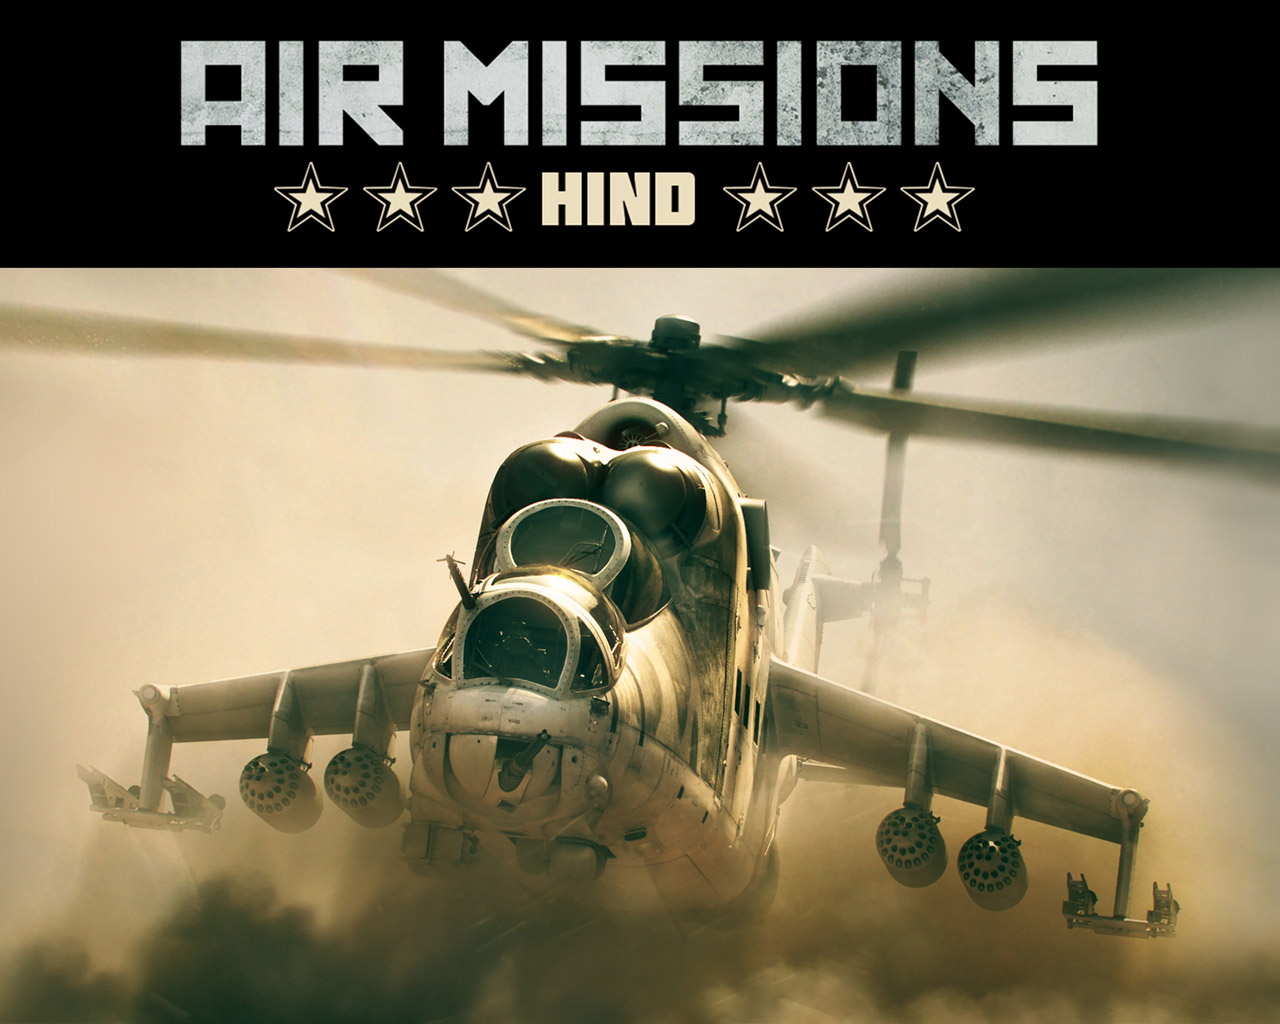 Free Air Missions: HIND Wallpaper in 1280x1024